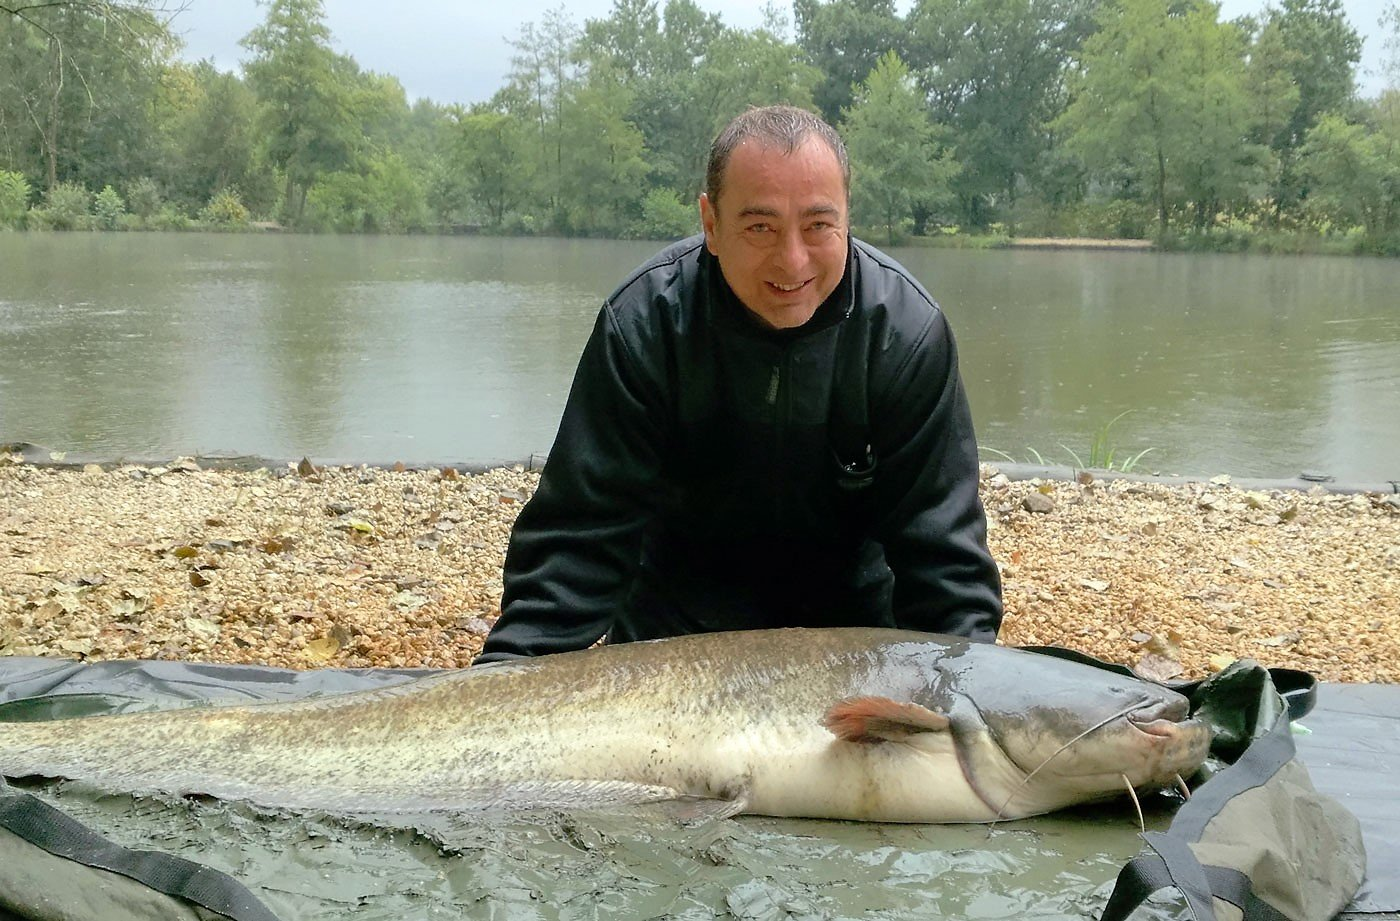 Bill with a 74lb catfish